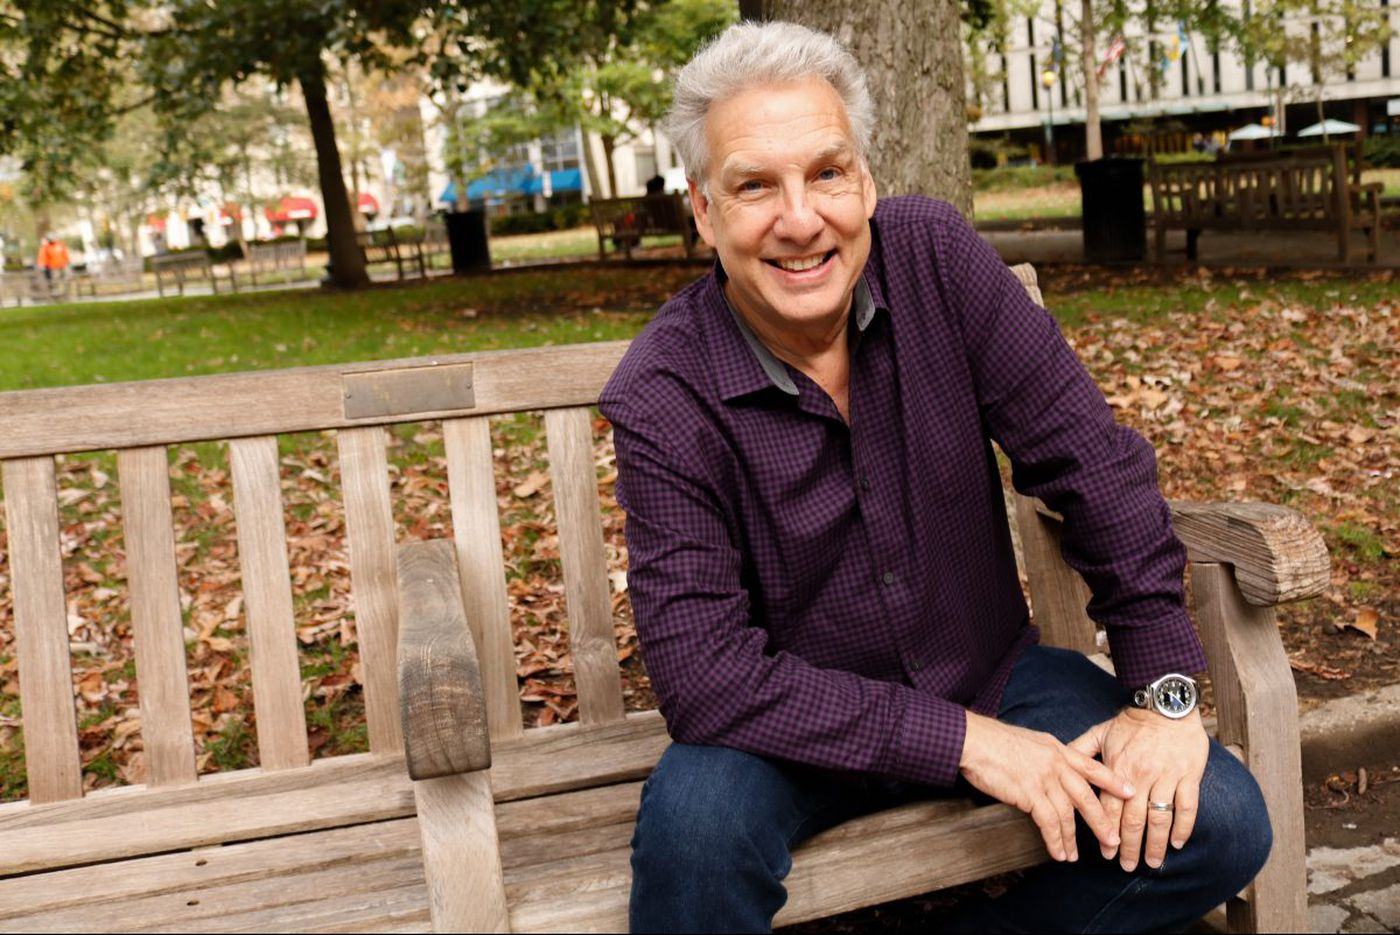 'Double Dare's' Marc Summers to bring 'On Your Marc' documentary, physical challenges to Philly